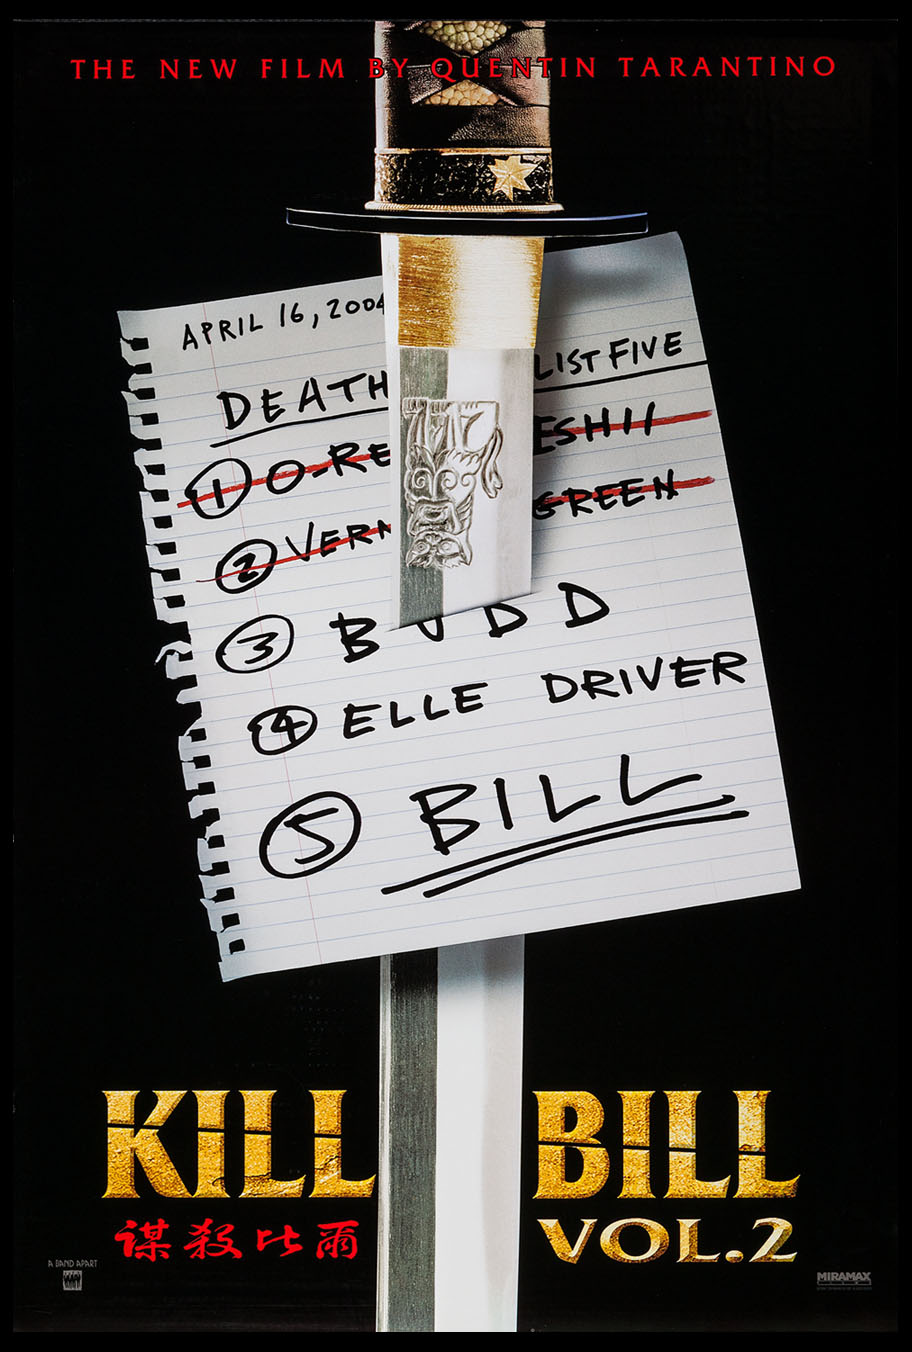 KILL BILL (Vol. 2) @ FilmPosters.com